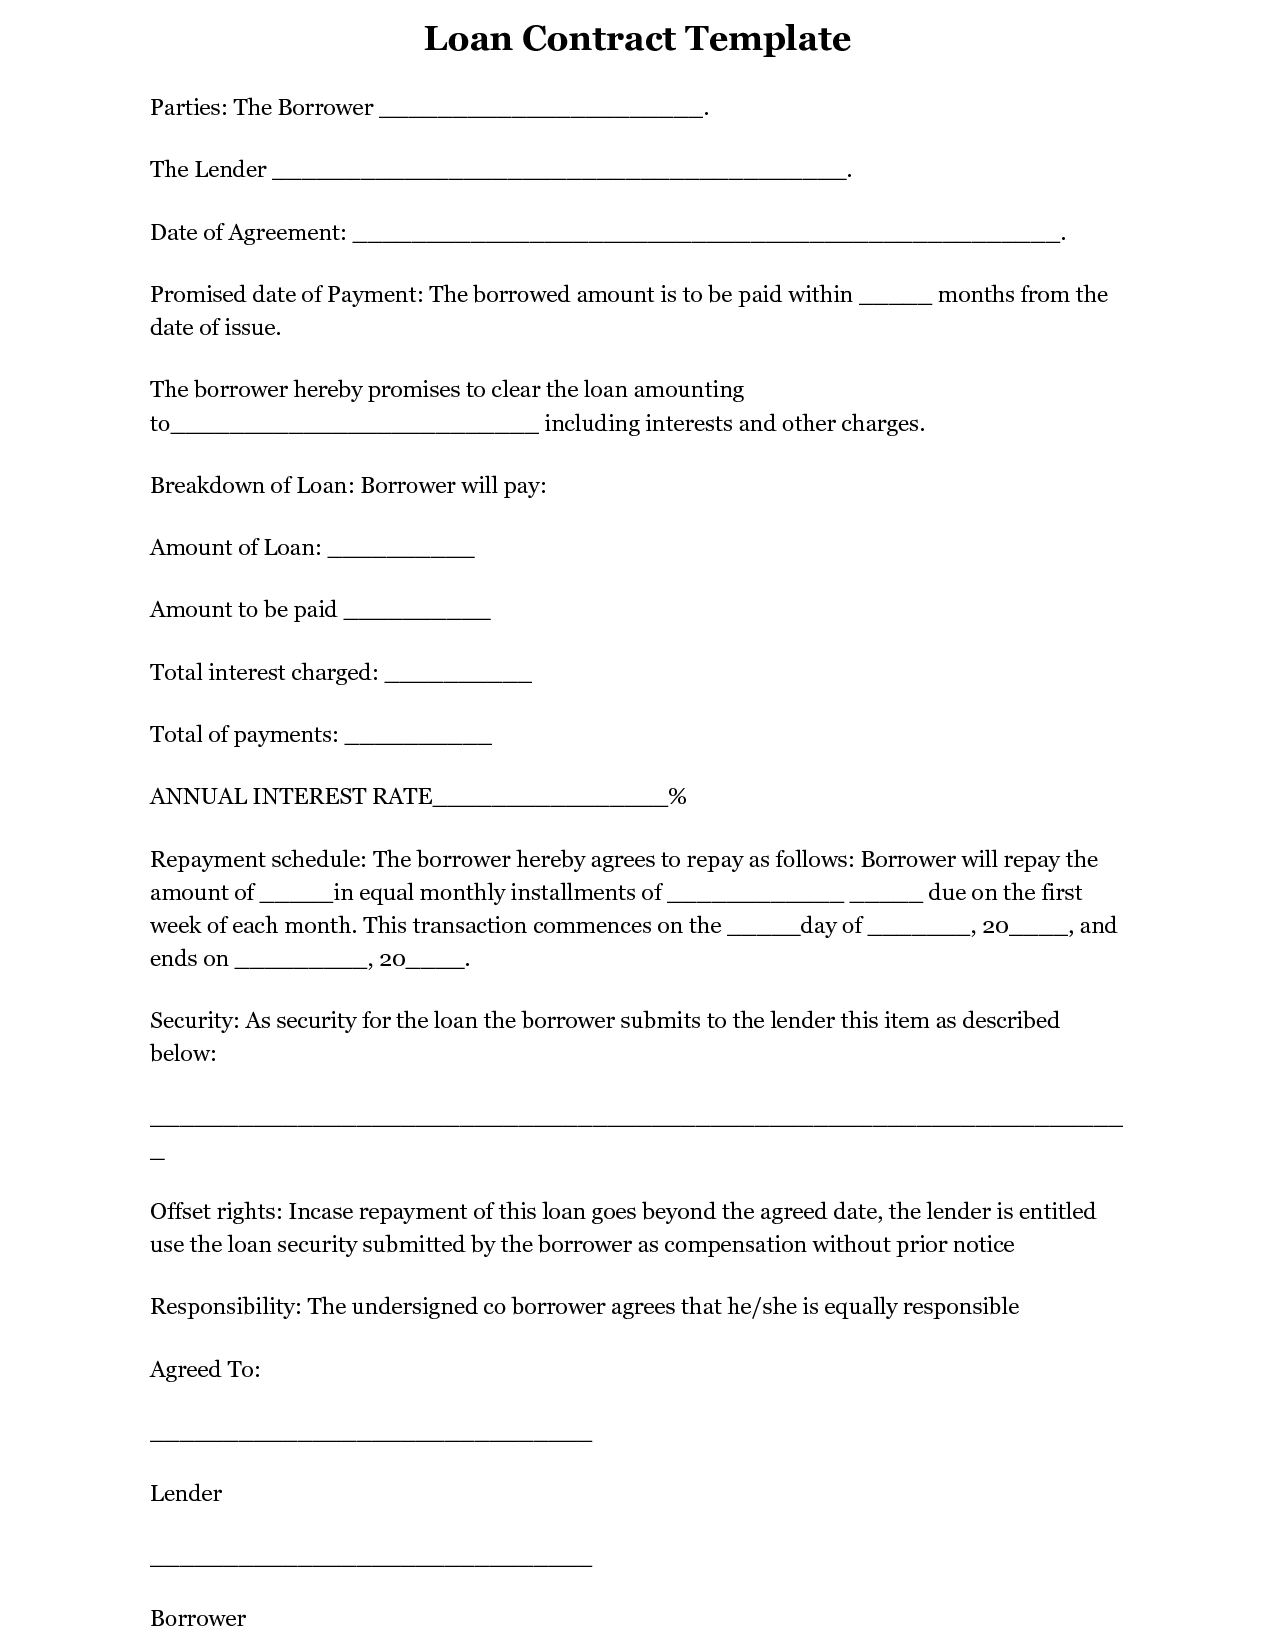 Simple Loan Agreement Template Free. Loan Agreement Template Microsoft Word  ...  Microsoft Word Loan Agreement Template